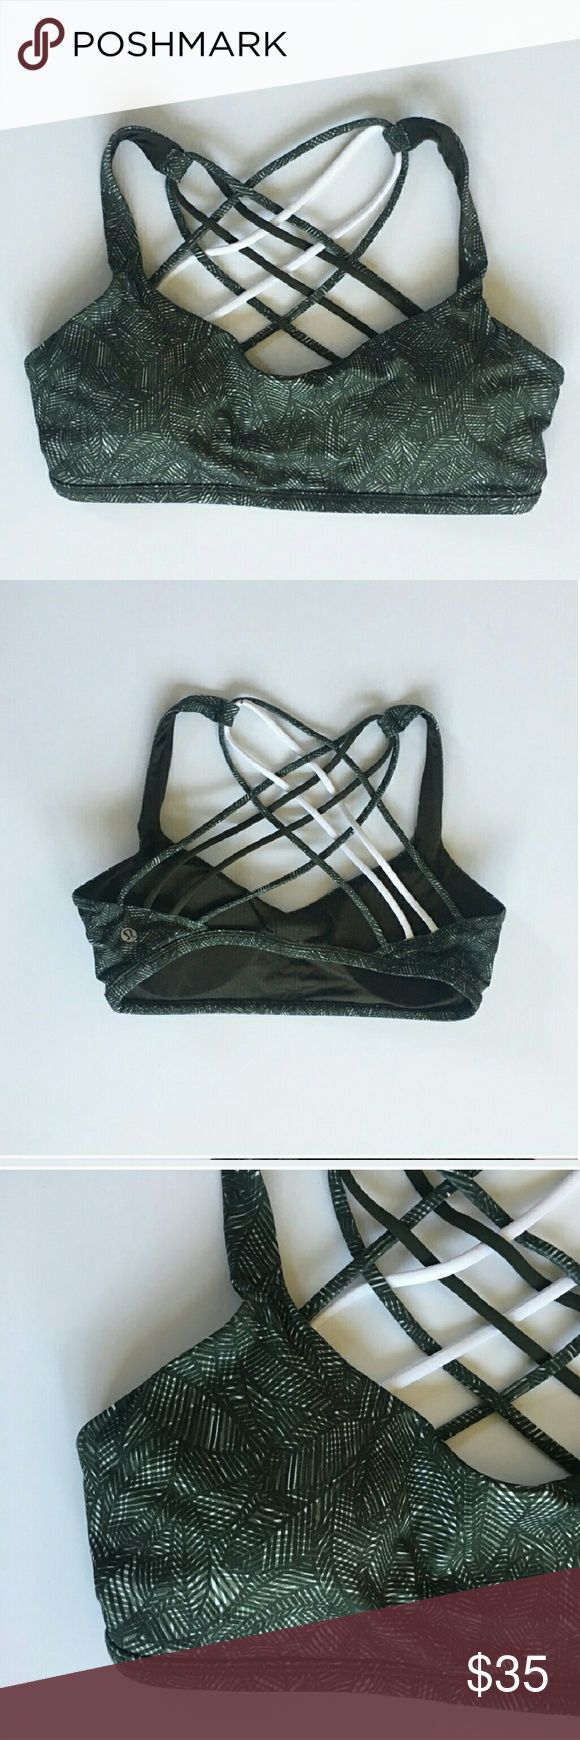 Lululemon free to be wild bra with padding 4 Lululemon free to be wild sports bra in green leaf palm Size 4 Has removable padding Smoke and pet free home Great condition lululemon athletica Tops